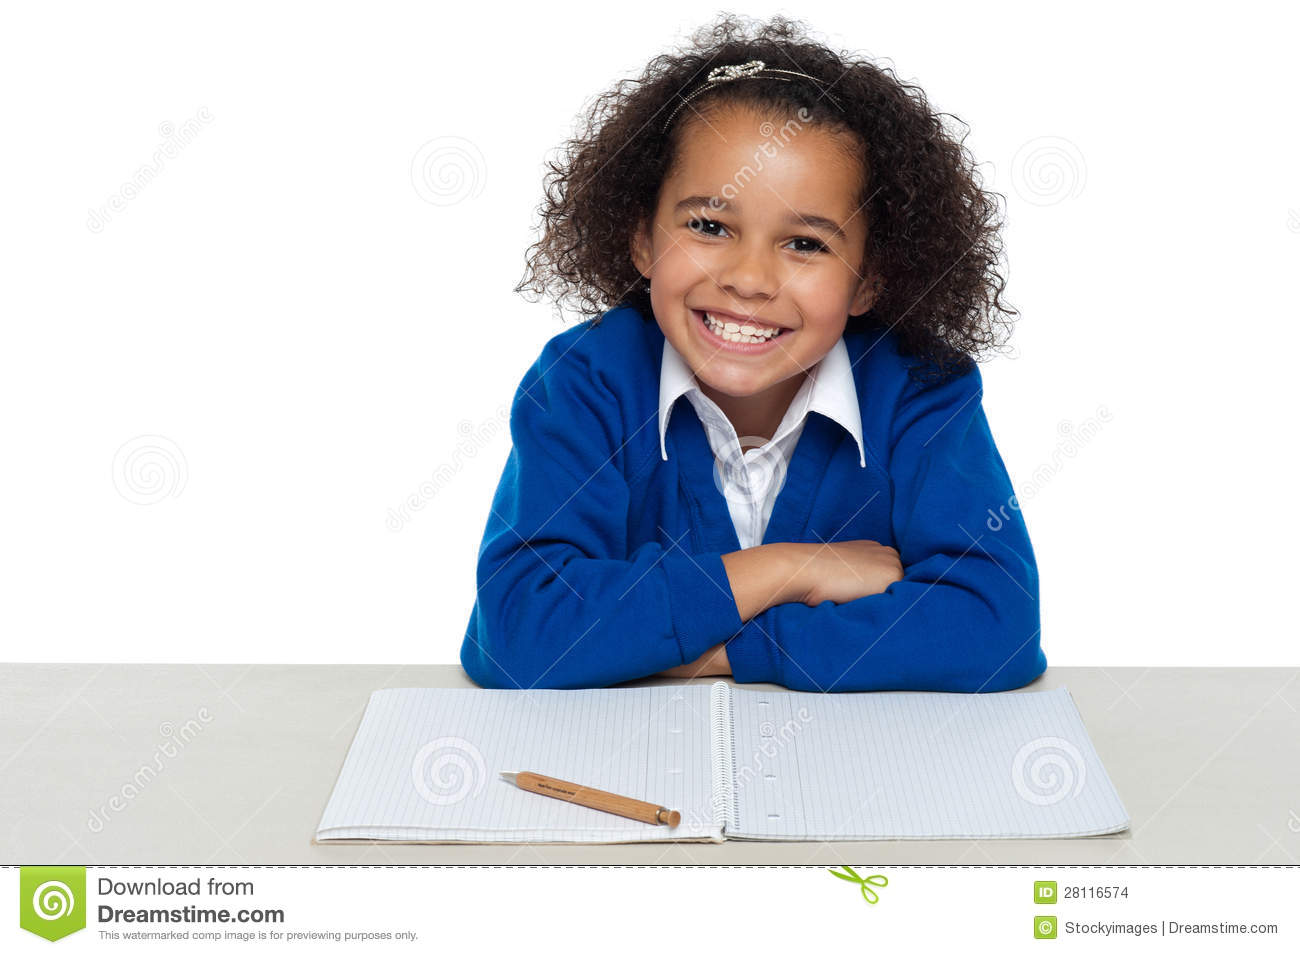 Student Paying Attention Clipart - Clipart Suggest